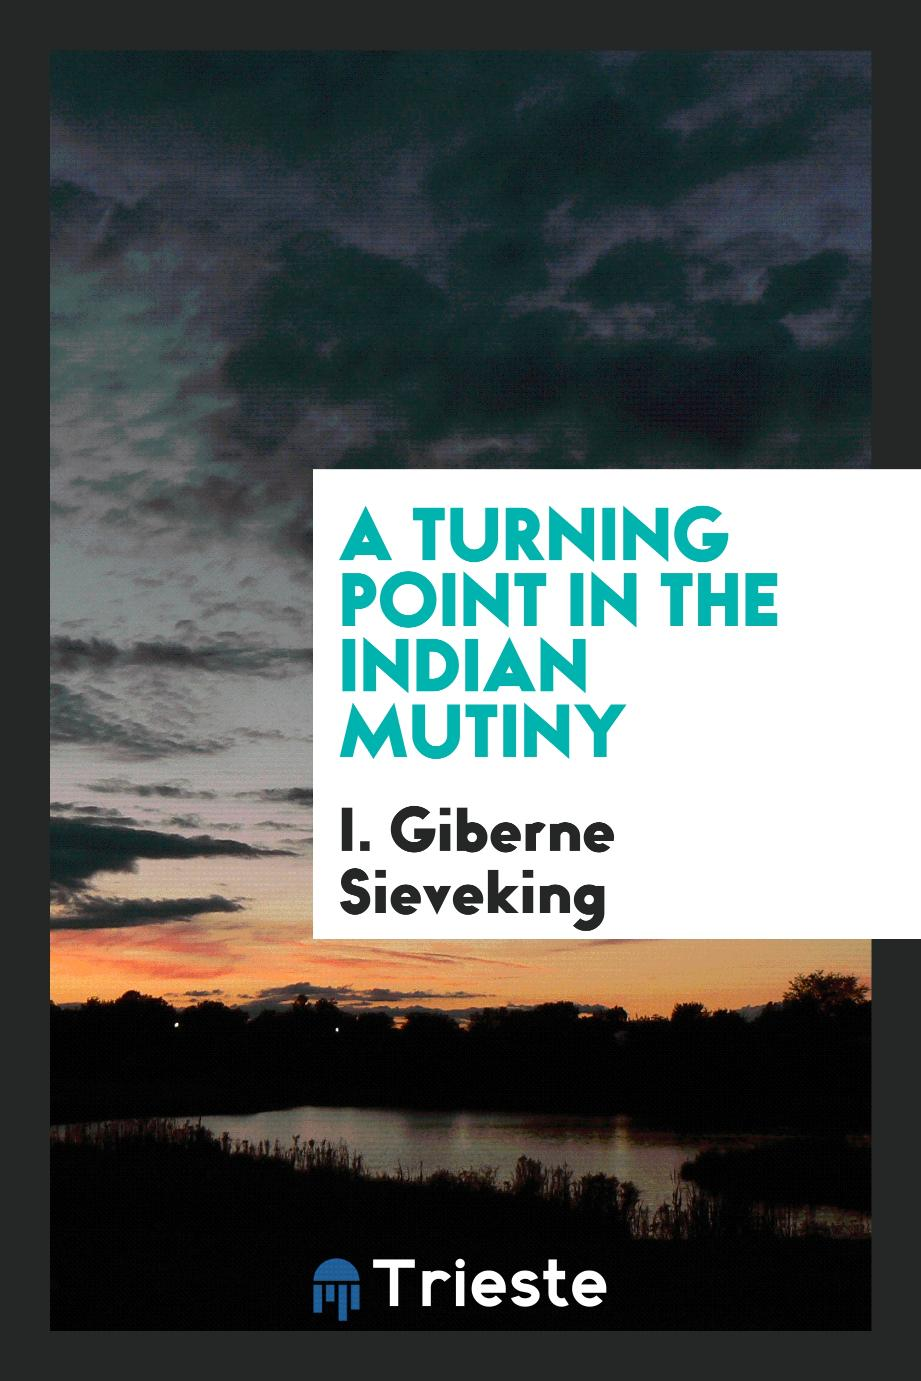 A turning point in the Indian mutiny